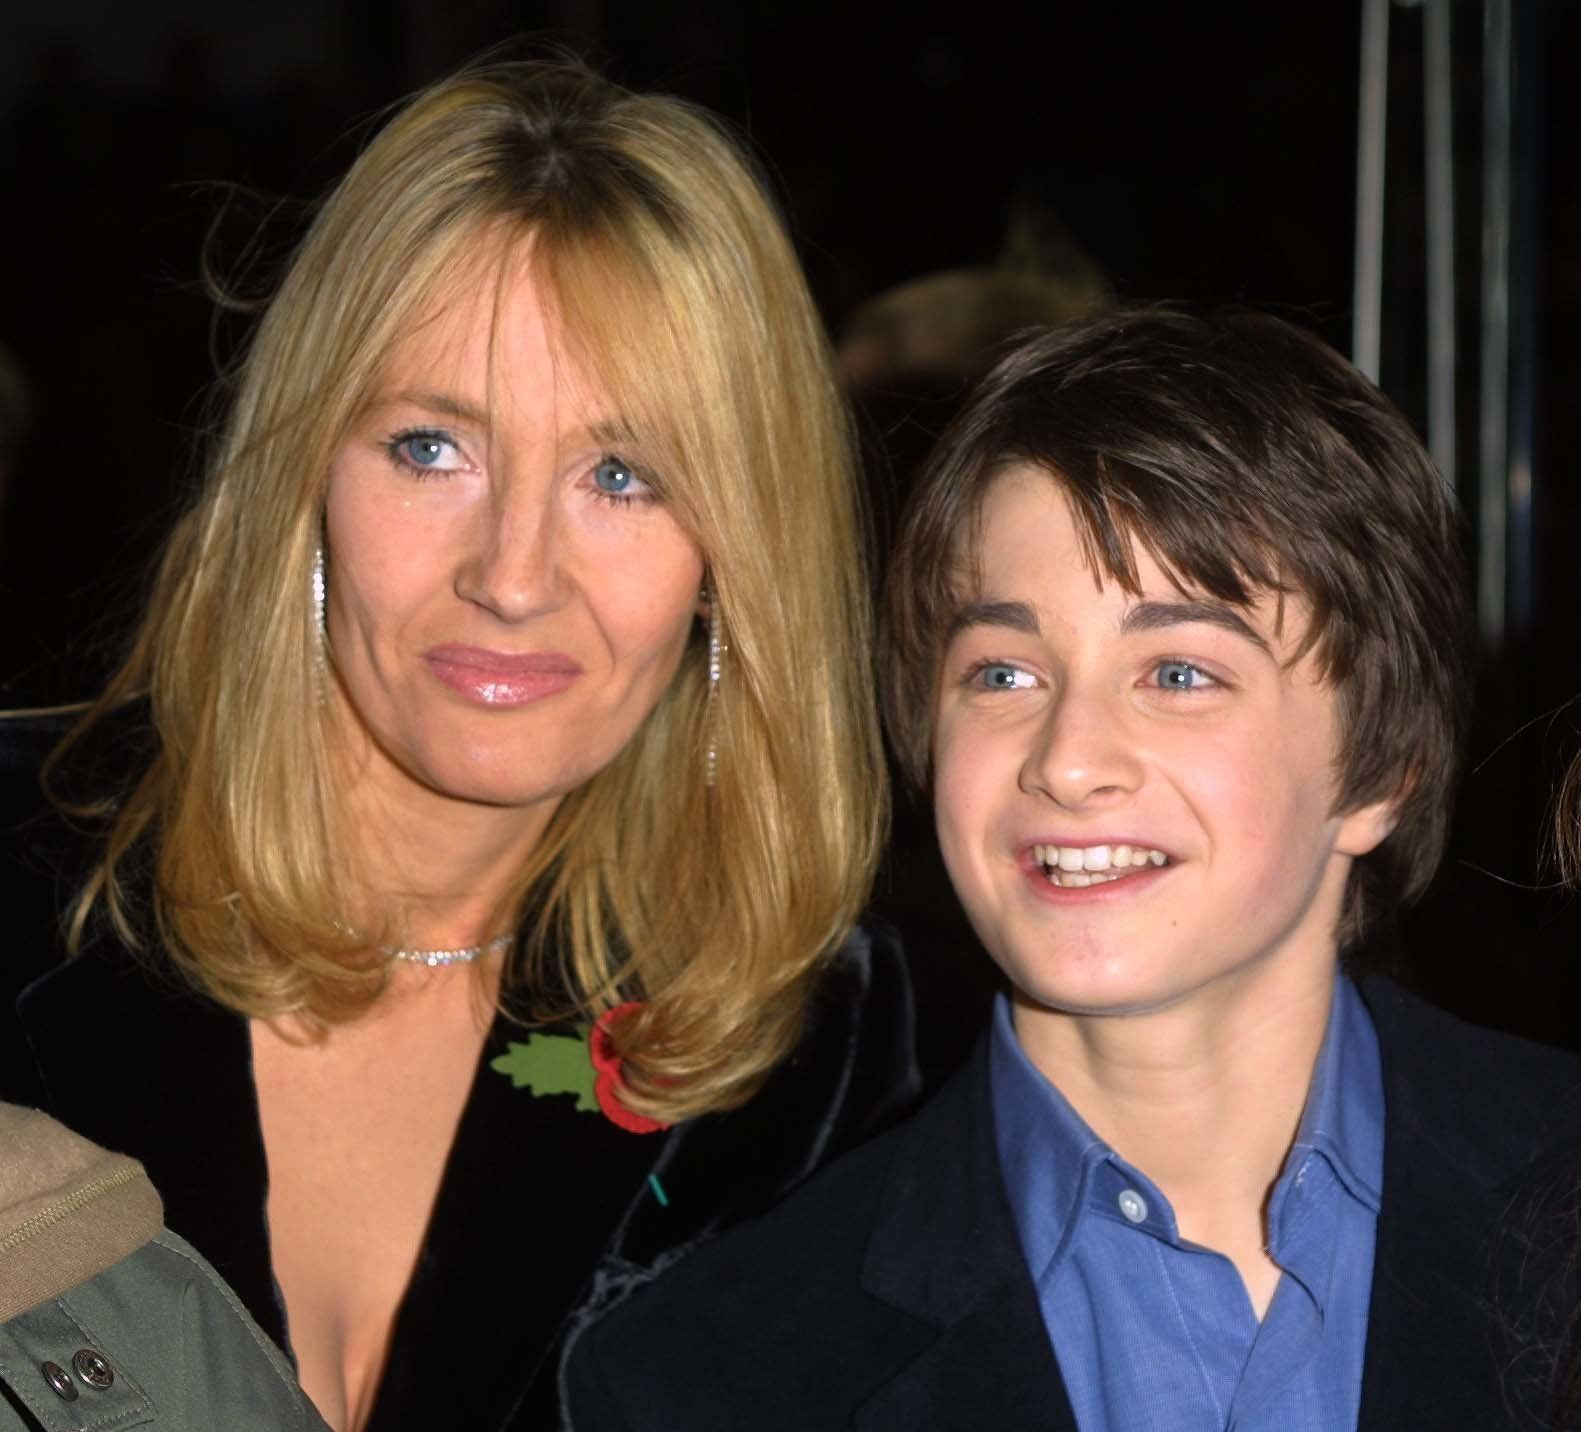 LONDON - NOVEMBER 4:  British author J.K. Rowling, creator of the Harry Potter children's books, and 11 year old Daniel Radcliffe (Harry Potter in the film version) attend the world film premiere of 'Harry Potter and The Philosopher's Stone' at the Odeon Leicester Square cinema in London on November 4, 2001. The movie is titled 'Harry Potter and The Sorcerer's Stone' for it's U.S. release. (Photo by Gareth Davies/Getty Images)